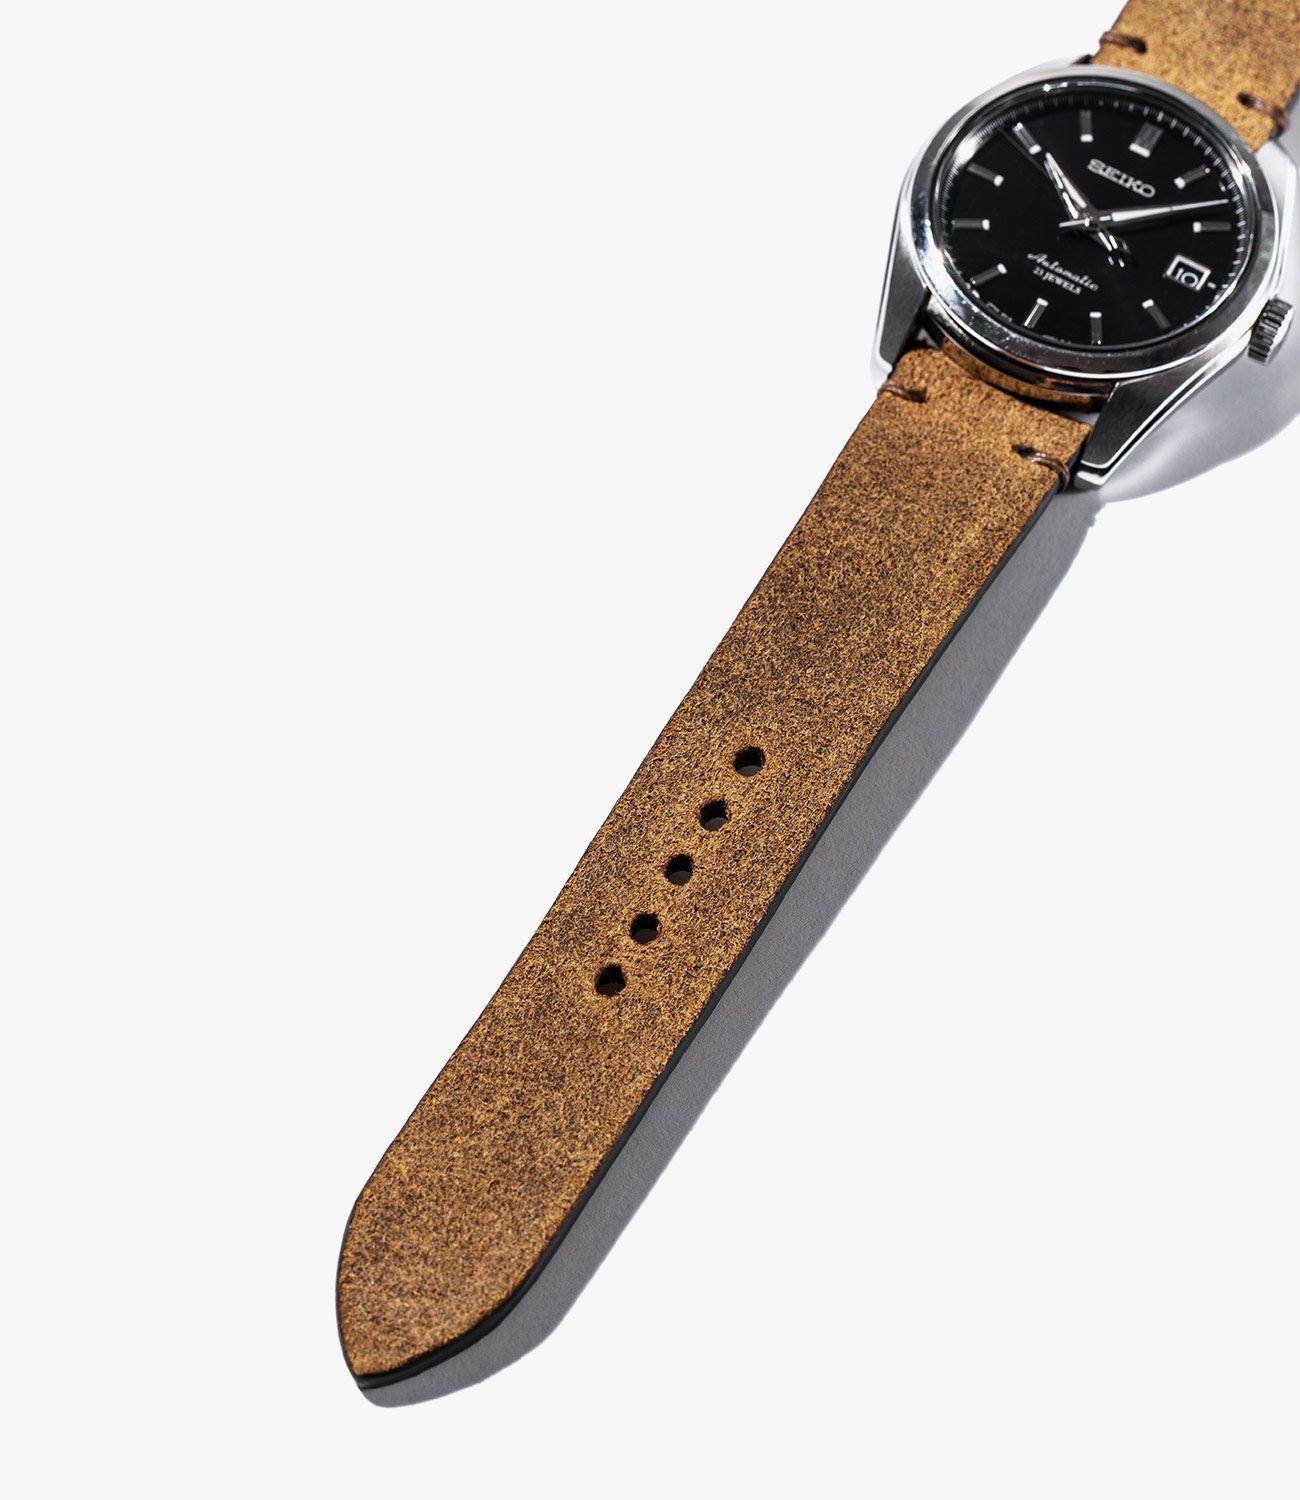 Leather-Watch-Bands-gear-patrol-Bas-and-Loks-Brown-slide-2